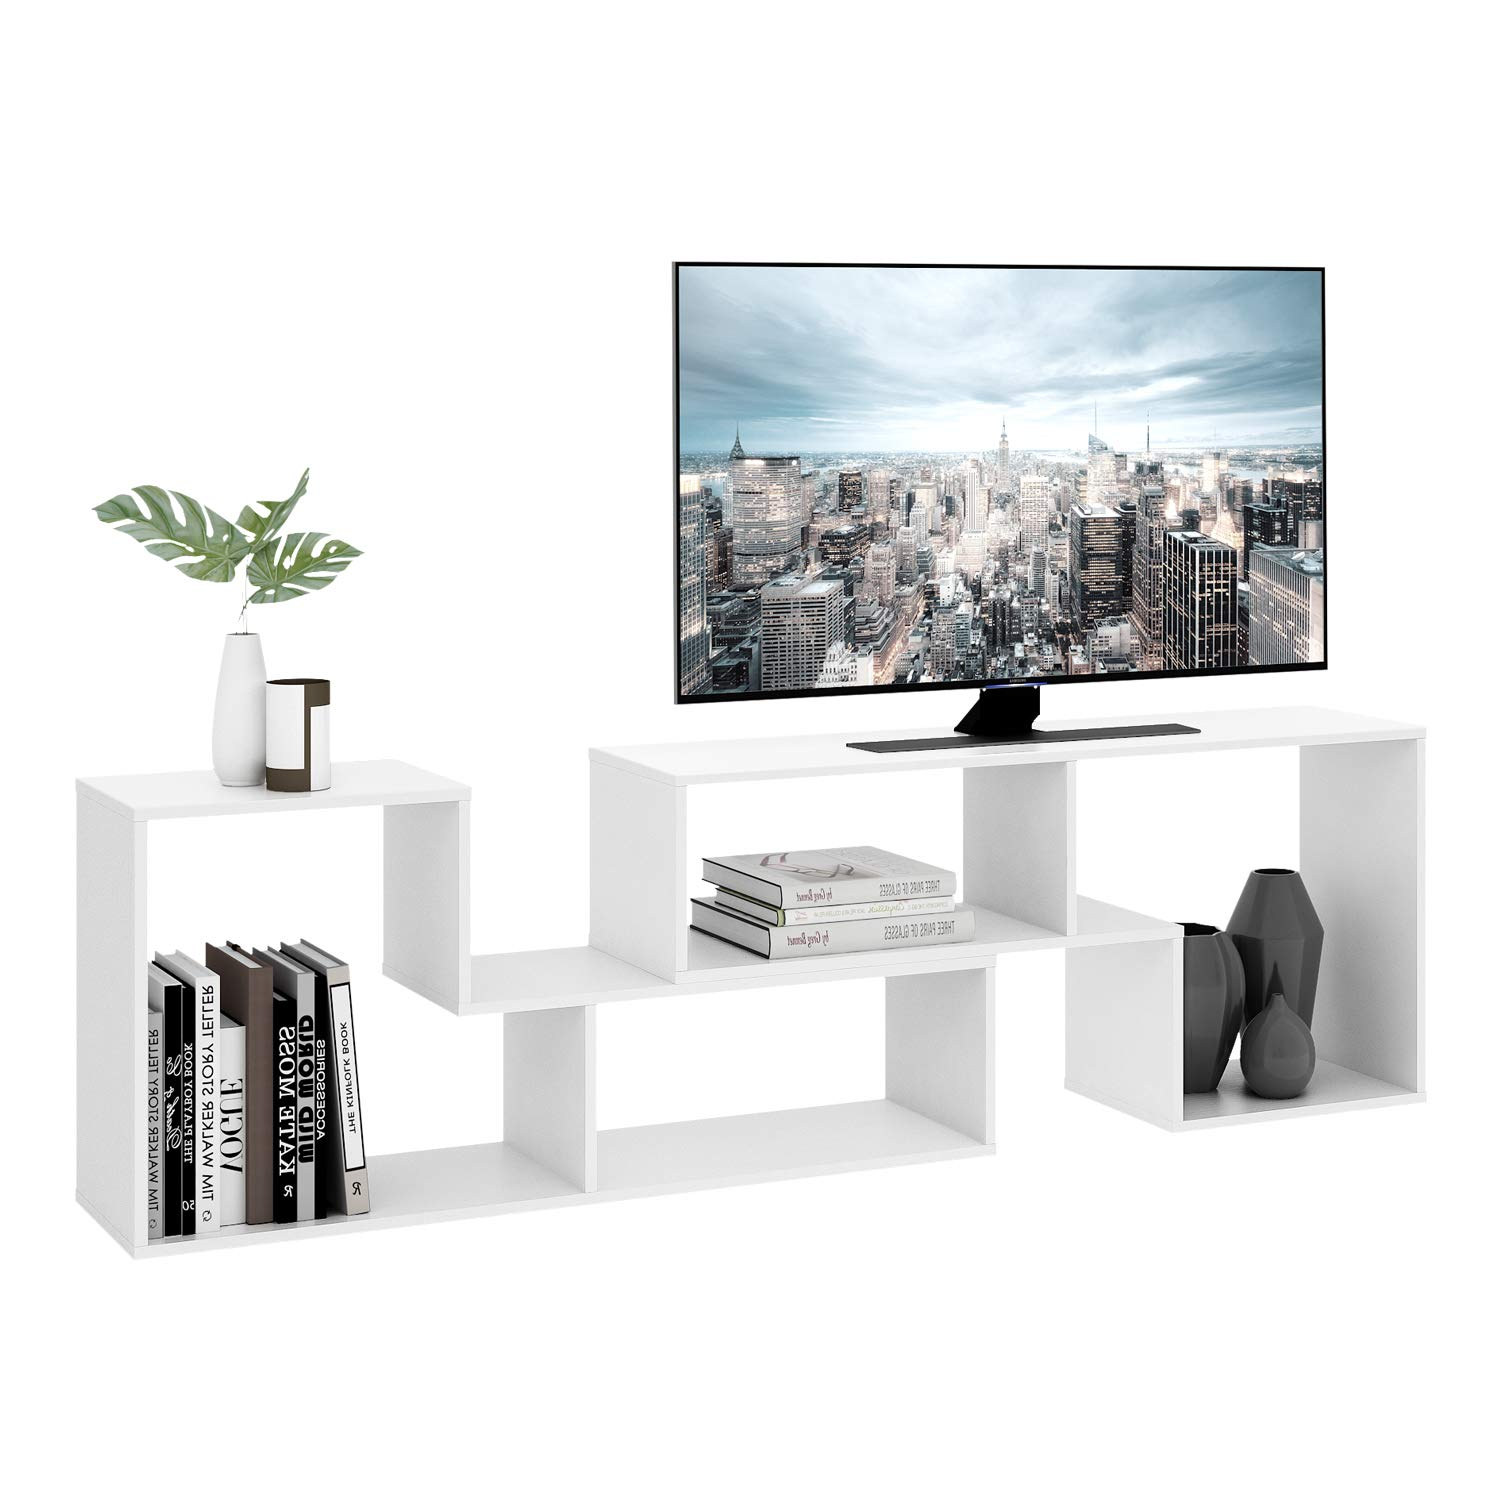 DEVAISE TV Stand, Modern and Versatile Entertainment Center Media Stand, Used as a Bookcase, TV Console/Storage Shelf for Your Living Room, 0.59'' Thick, White by DEVAISE